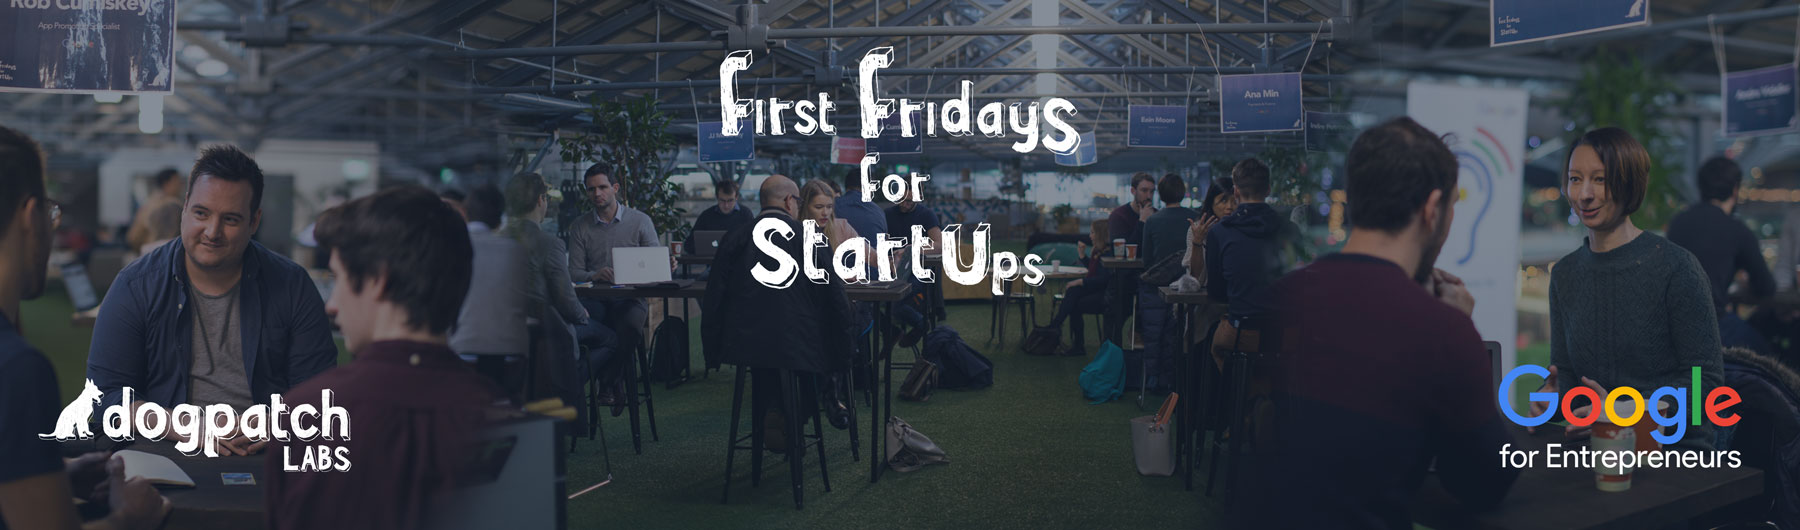 First Fridays for Startups - Networking - 7th April 2017